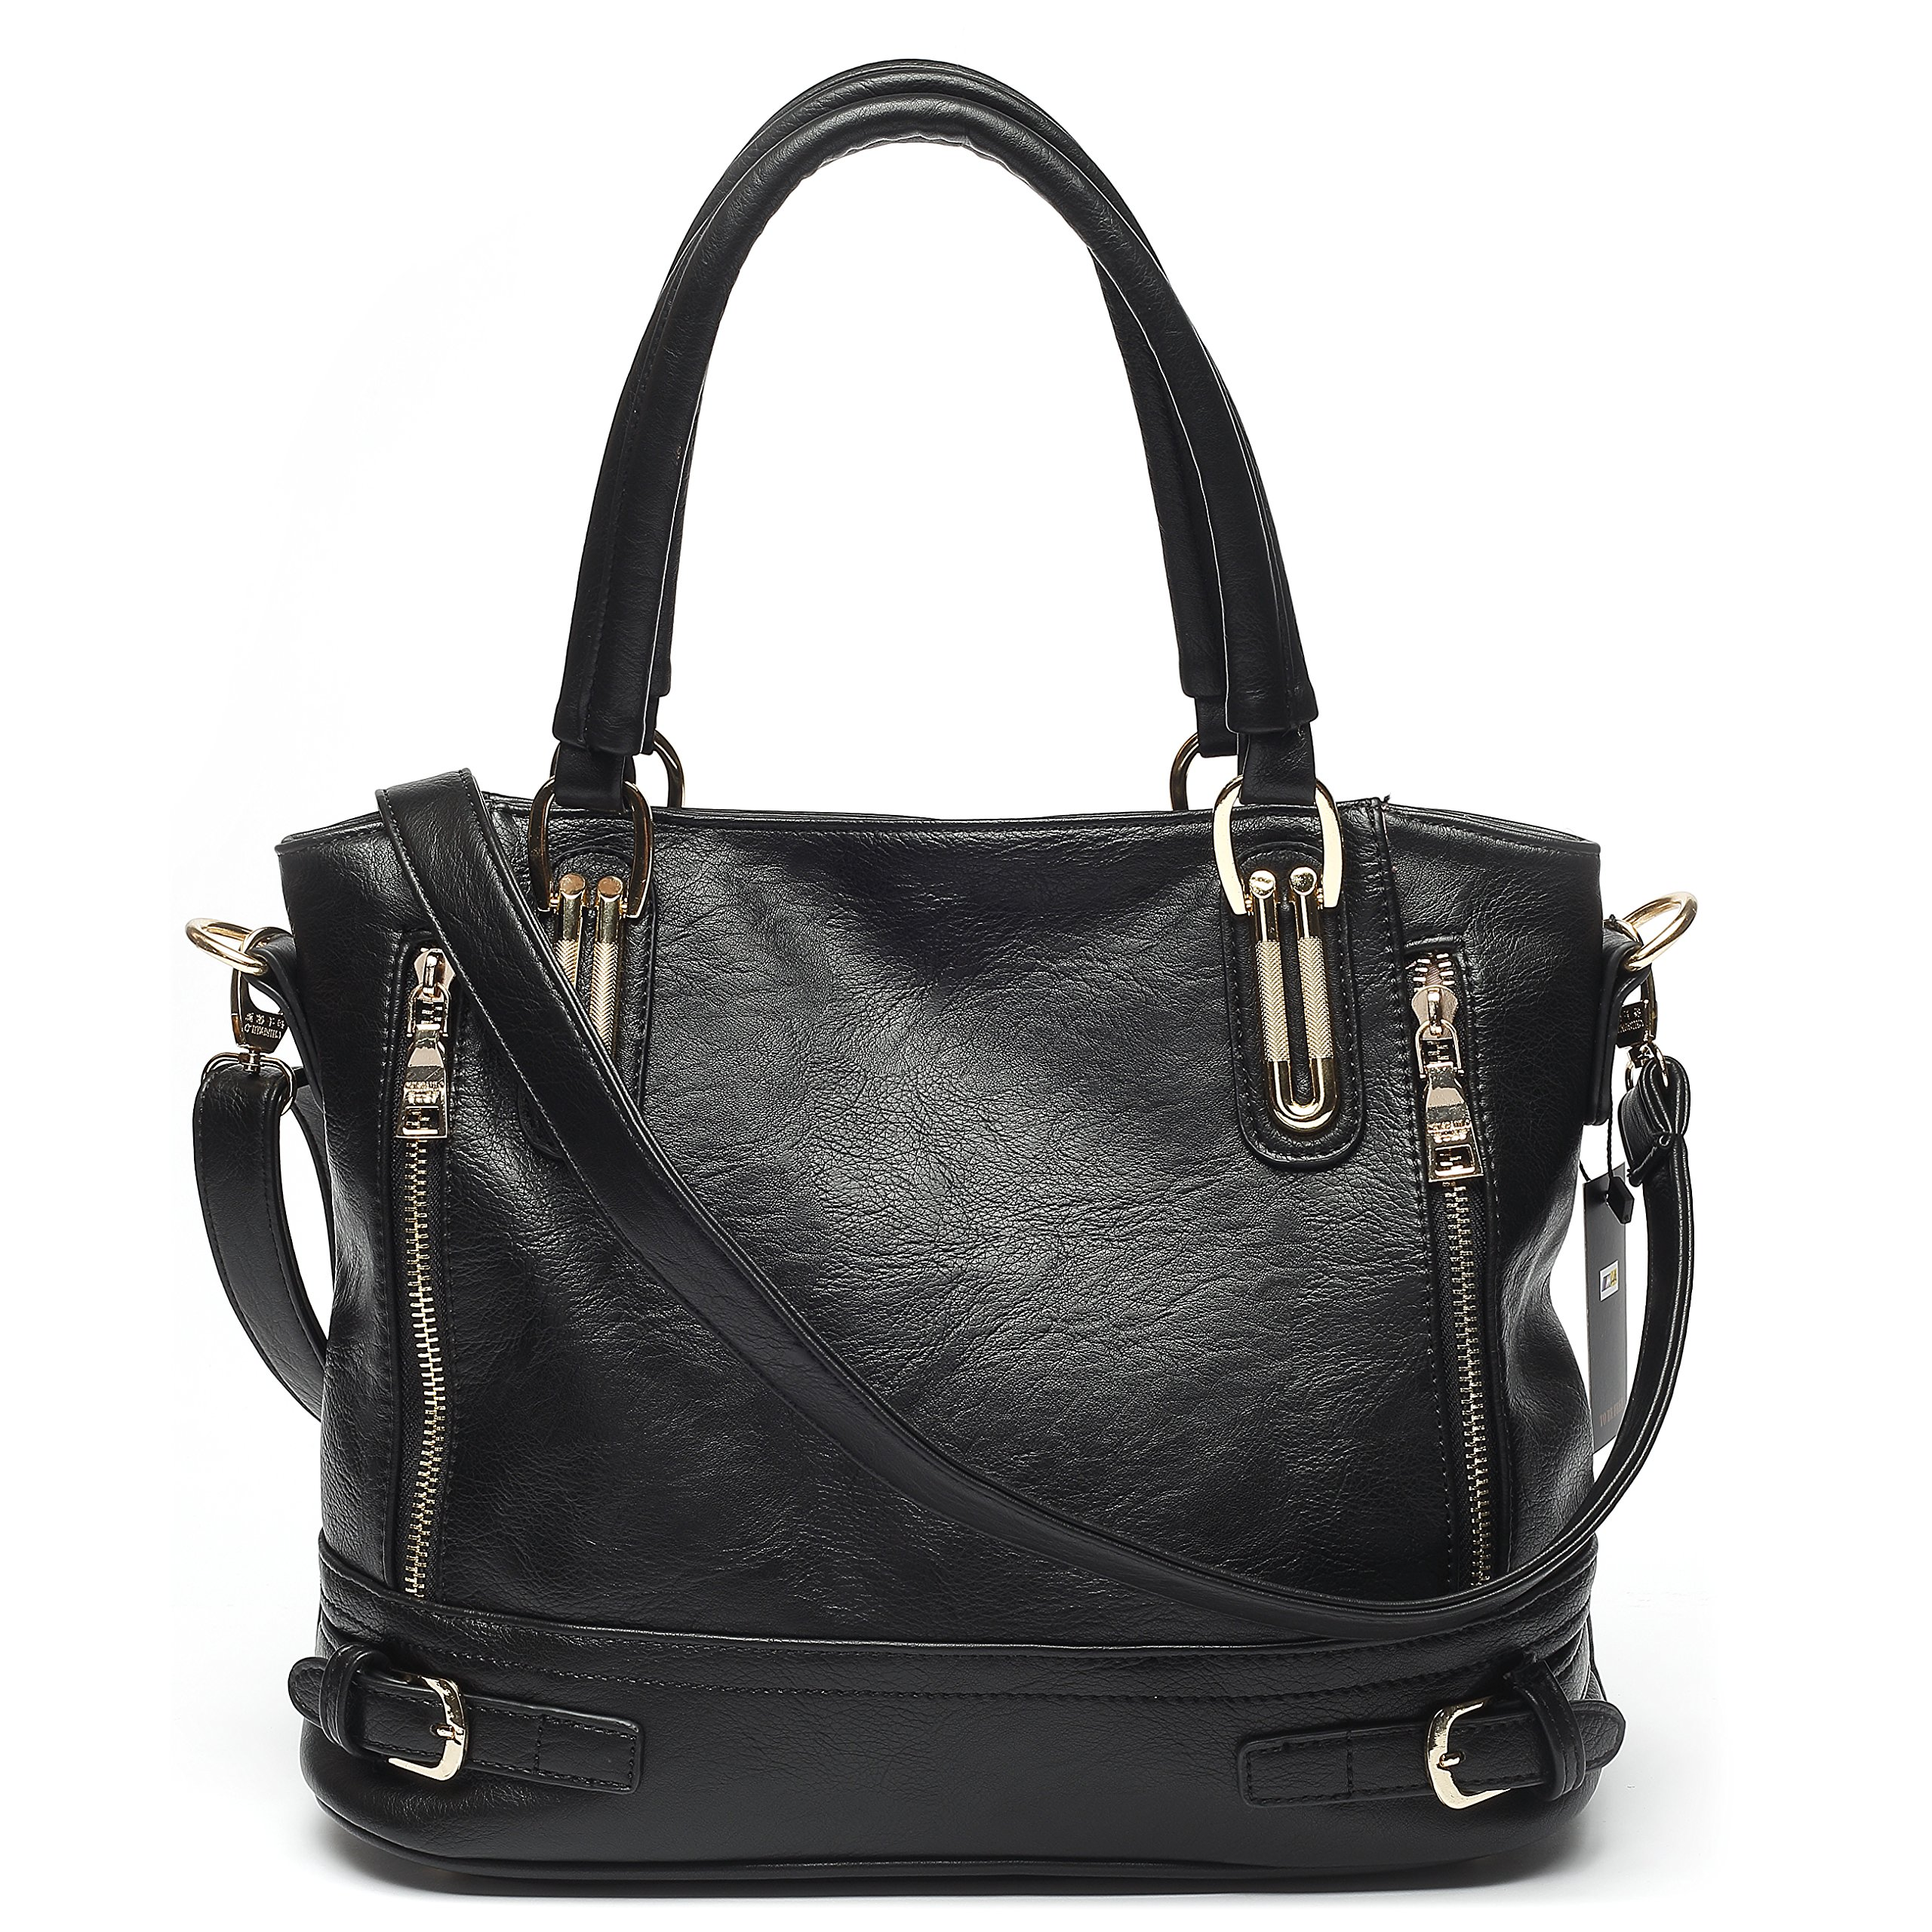 Mlife Medium Women Faux Leather Shoulder Handbag Hobos (Black) by Mlife